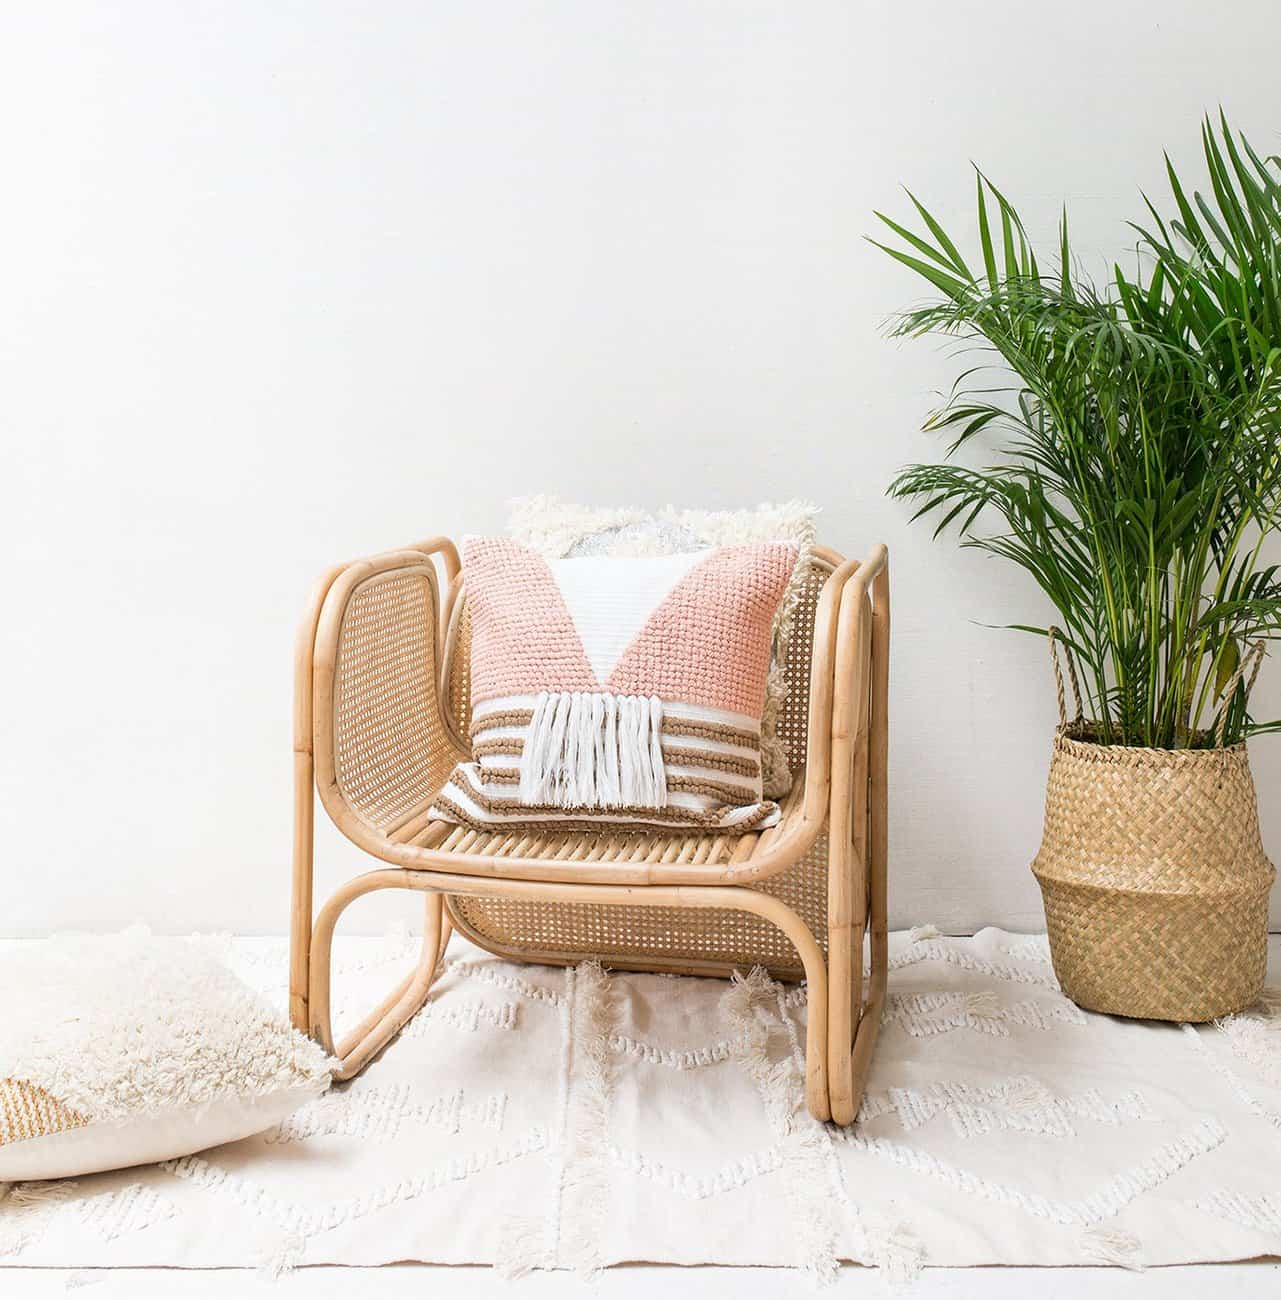 Fringed Cushions from Wanderlust Wares